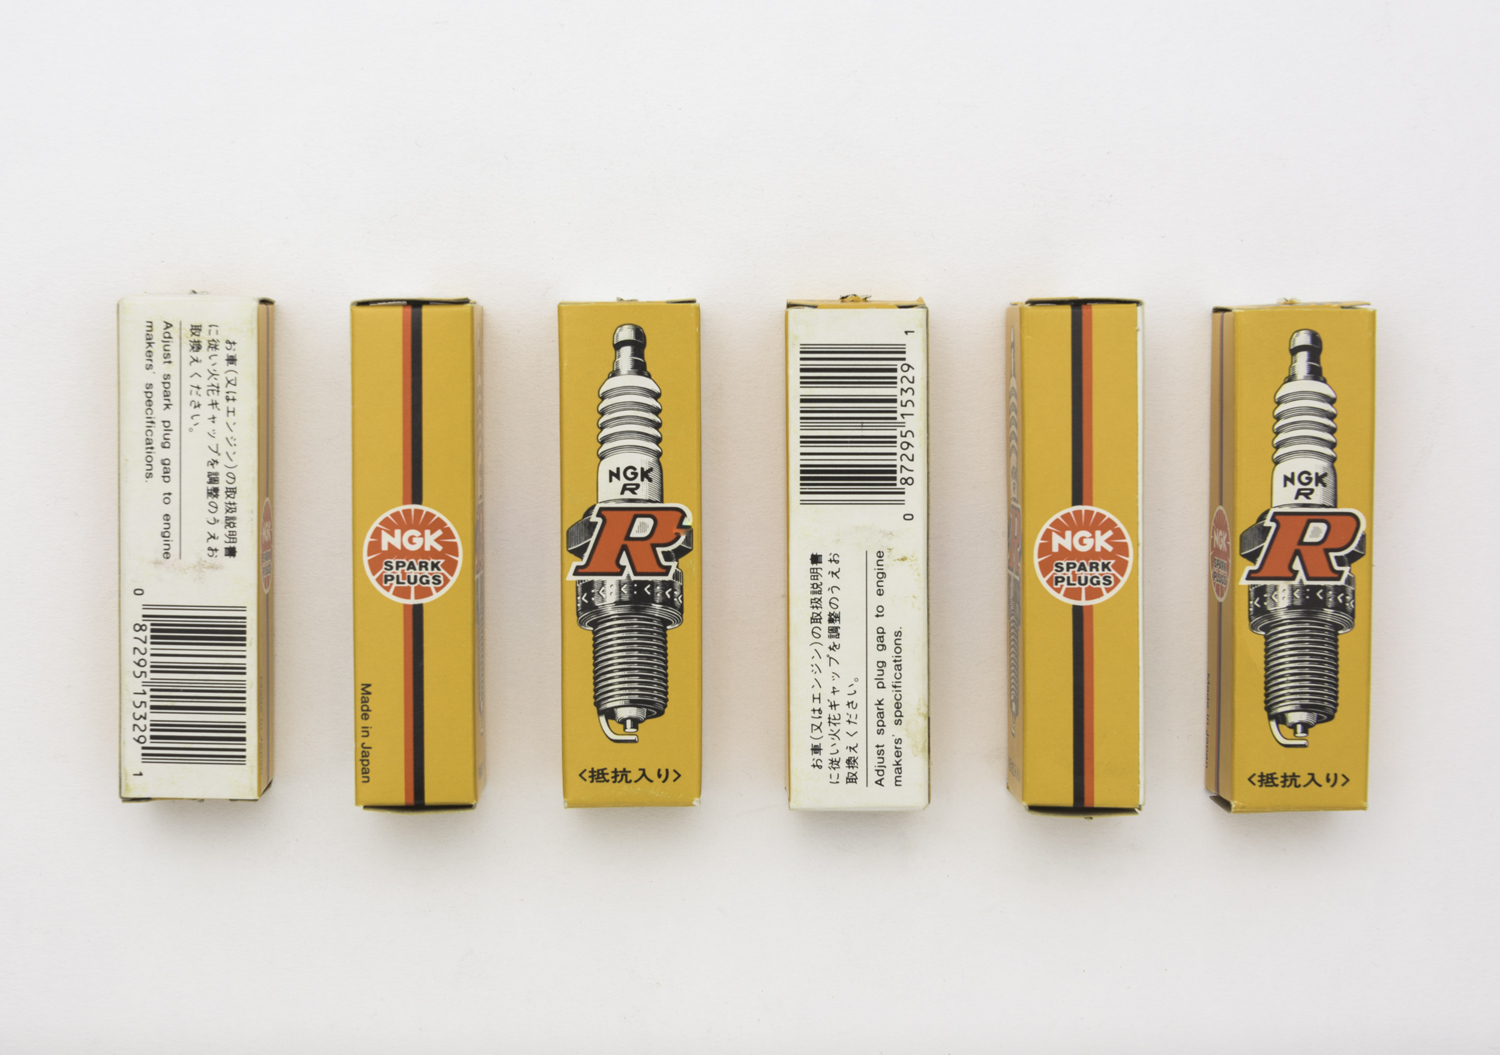 Packaging for NKG Spark Plugs